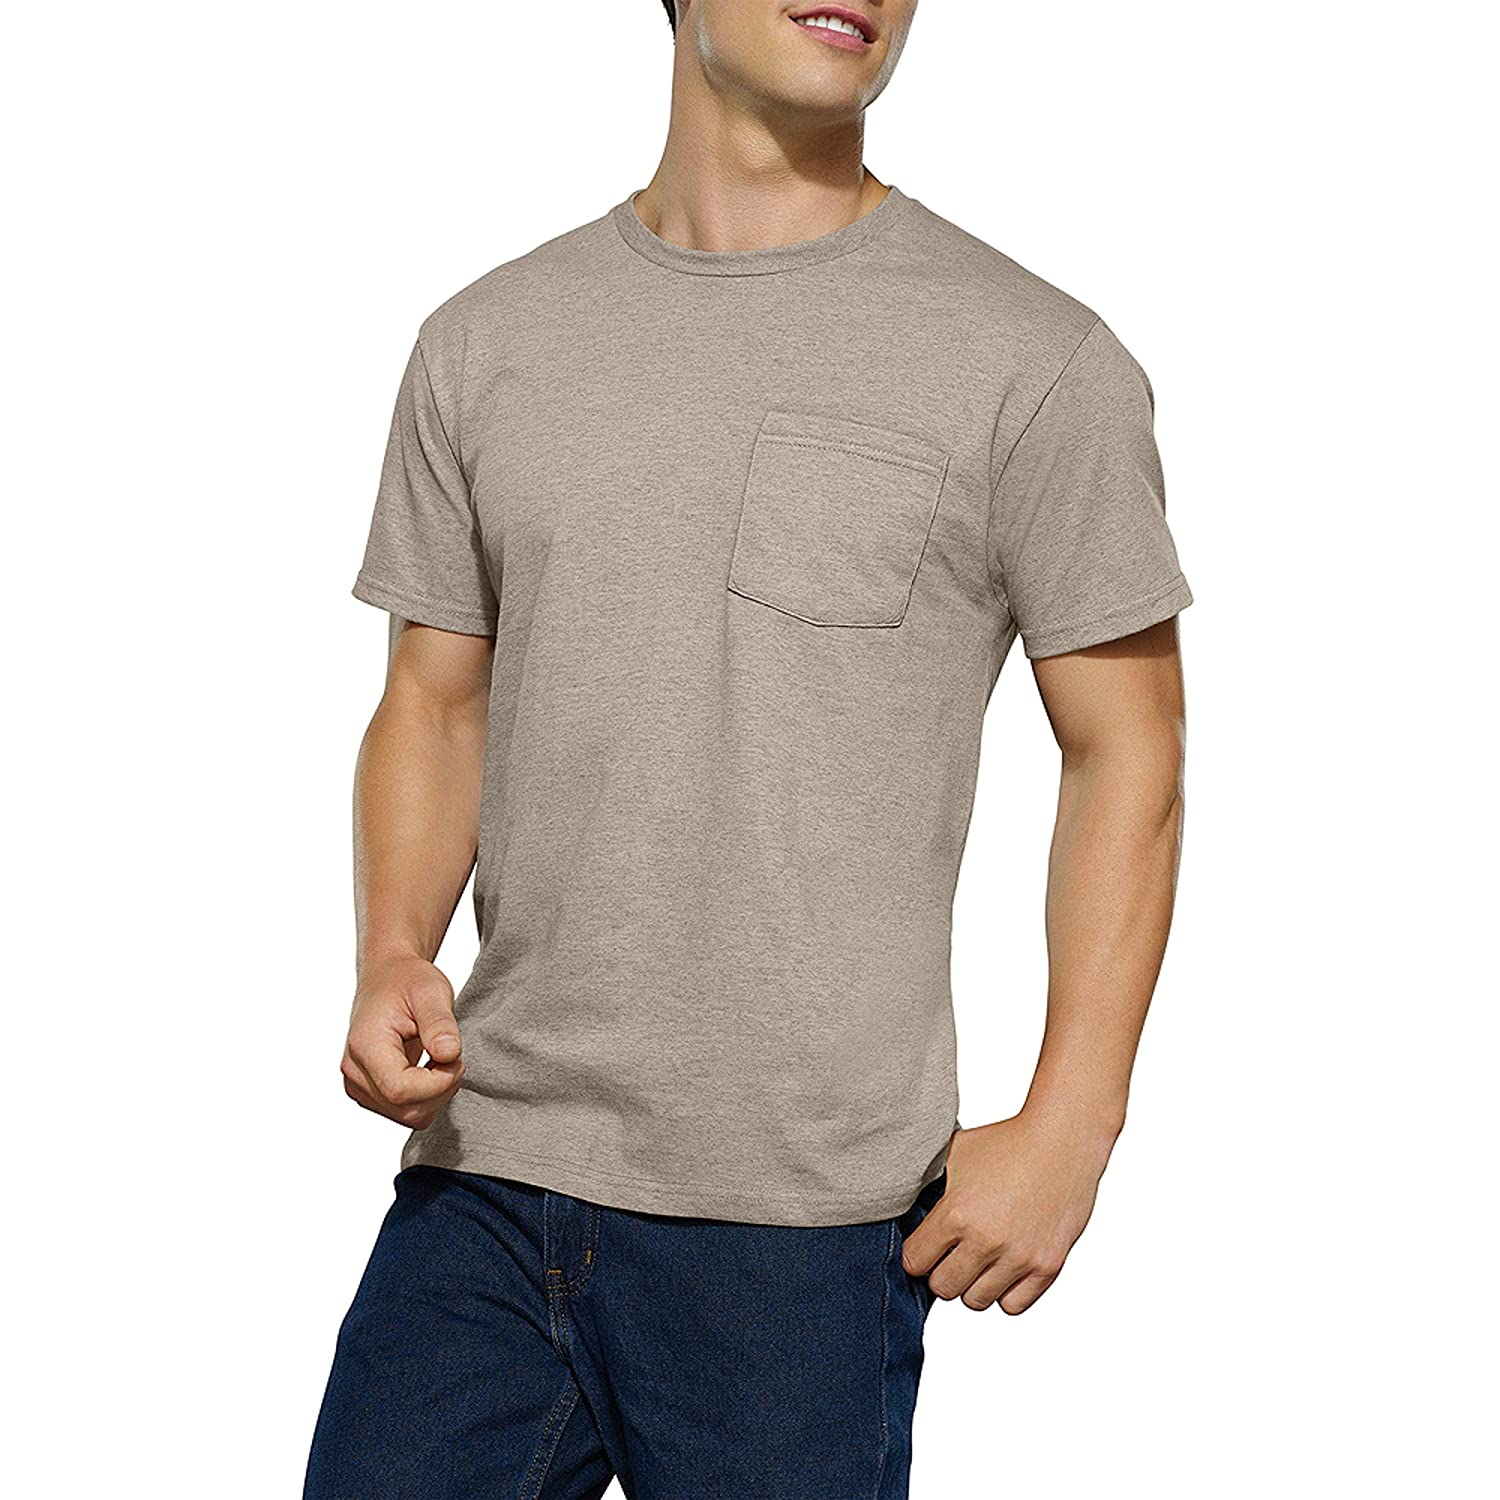 Top 10 Wholesale Comfort Colors Pocket T Shirts Chinabrands Com